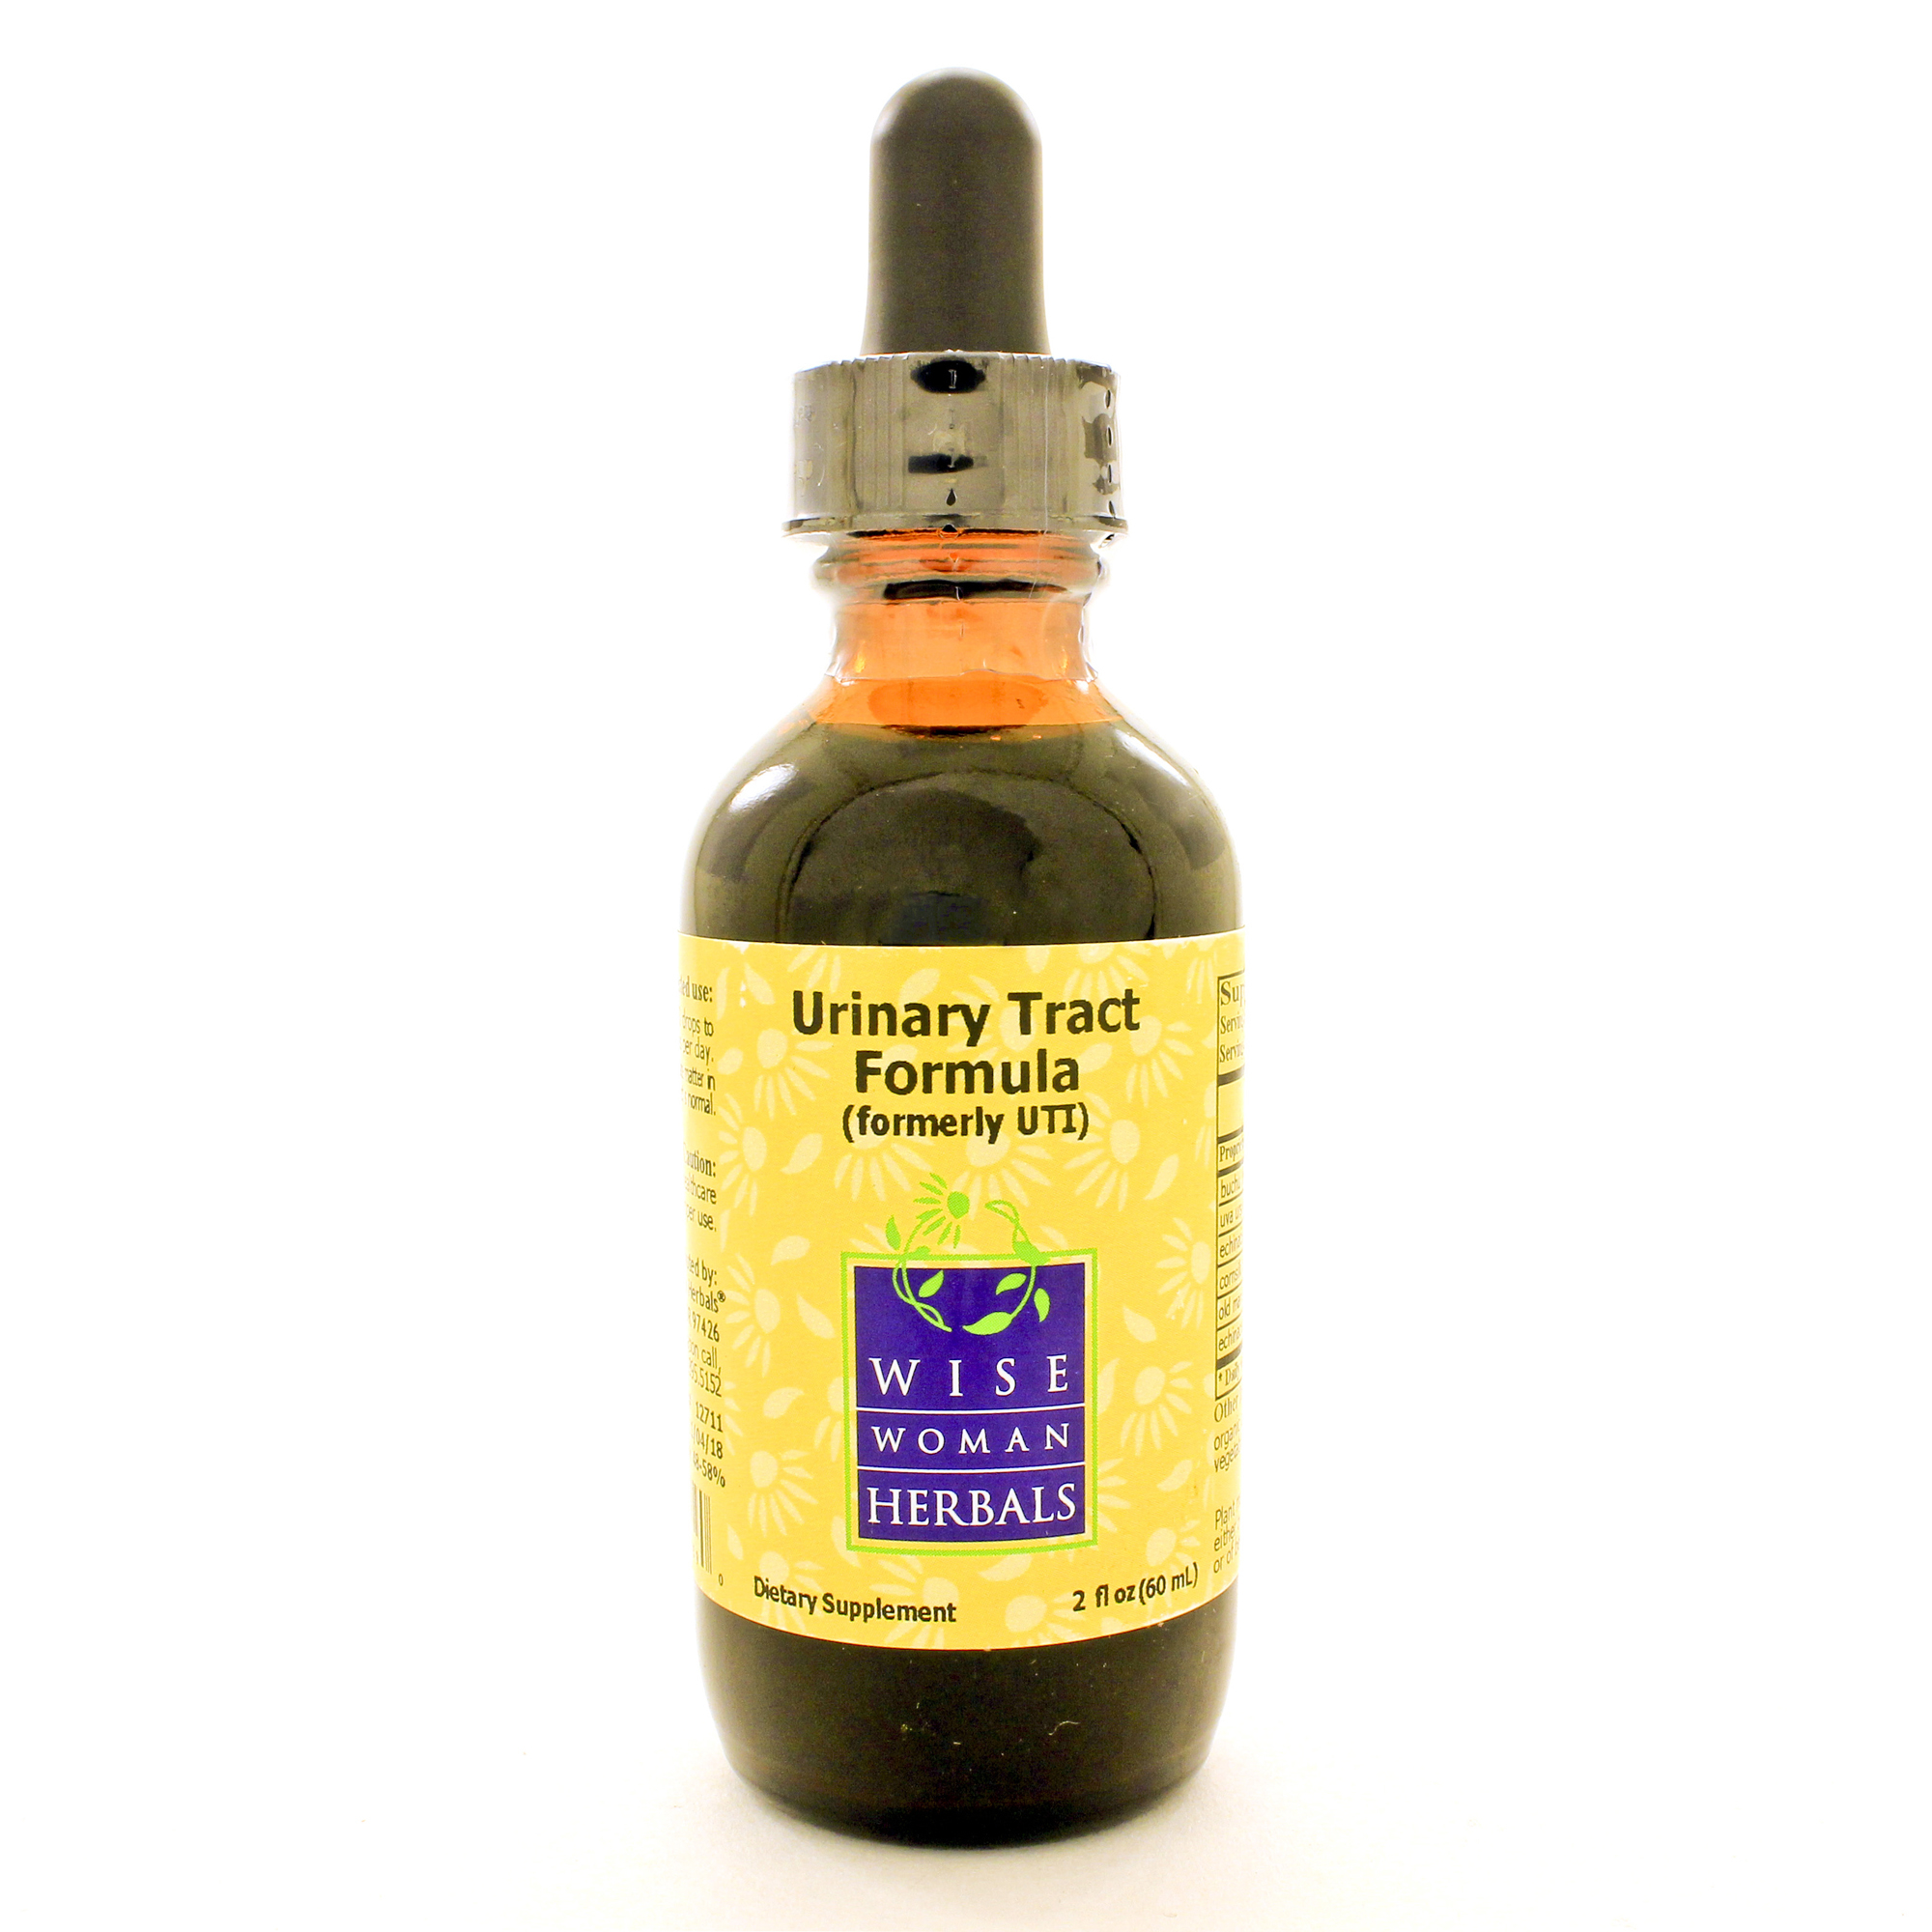 Wise Woman Herbals Urinary Tract Formula (formerly UTI Formula) 8oz